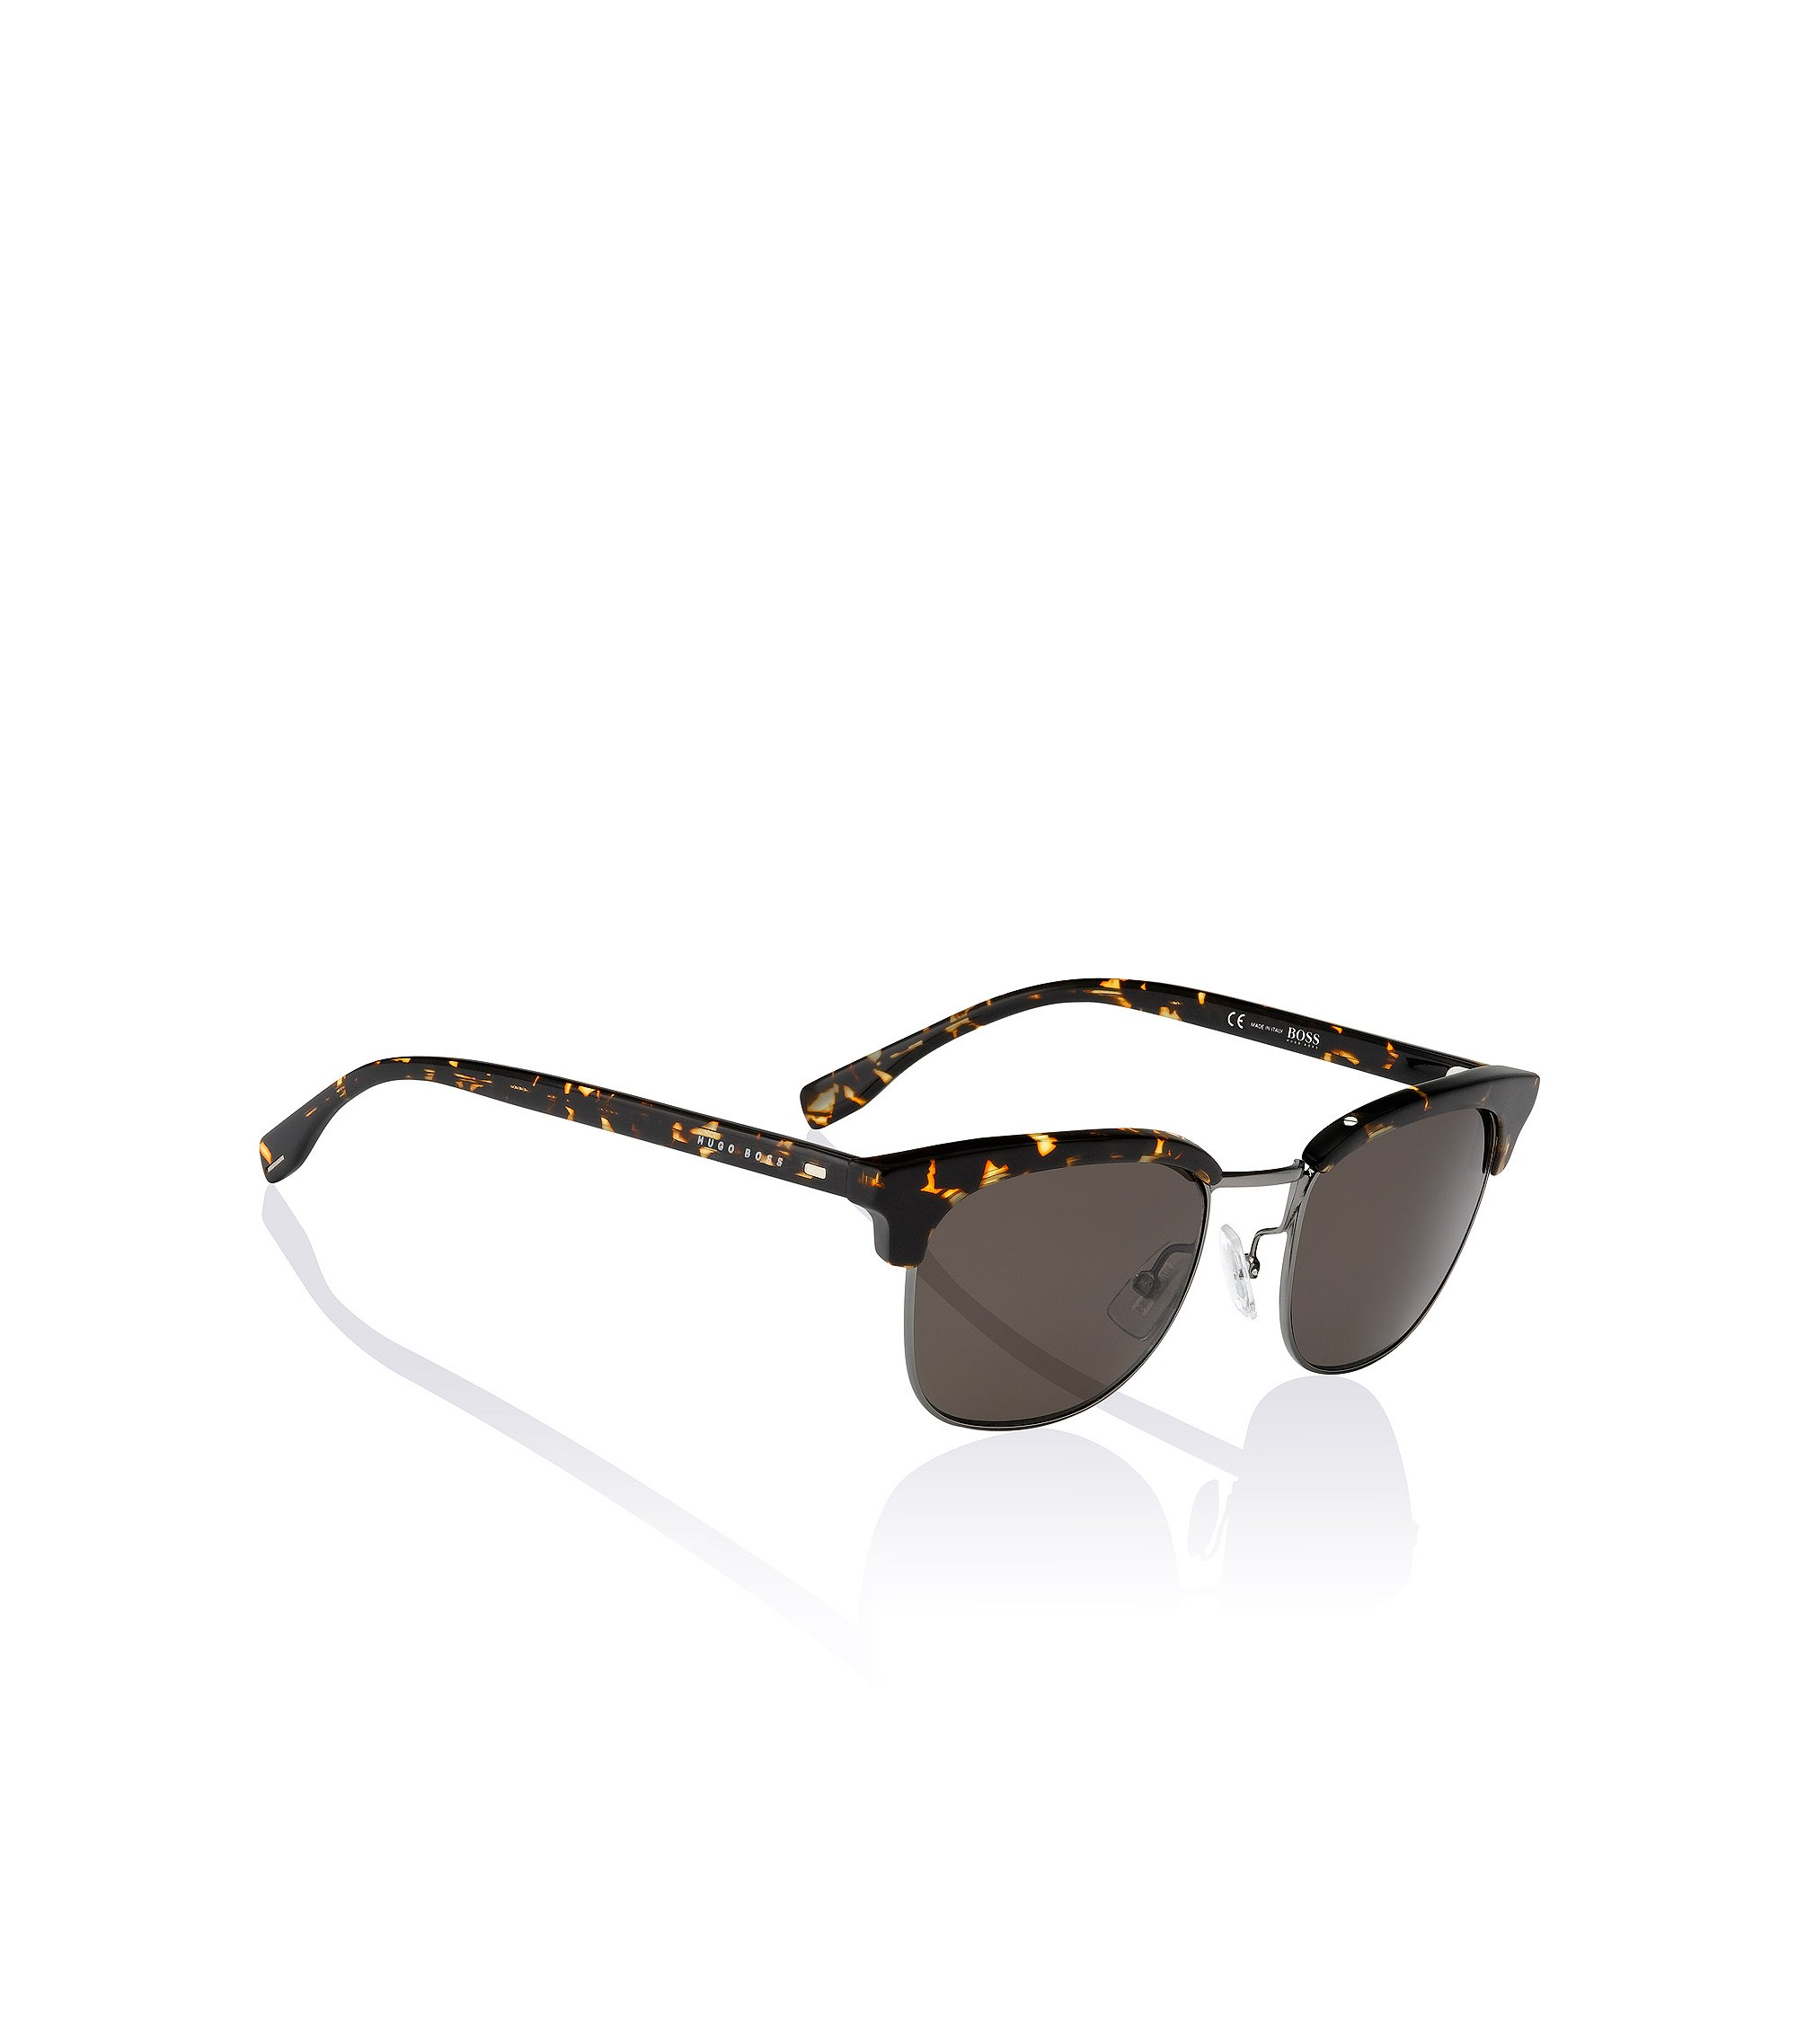 Clubmaster sunglasses 'BOSS 0667' in synthetic material and metal, Assorted-Pre-Pack